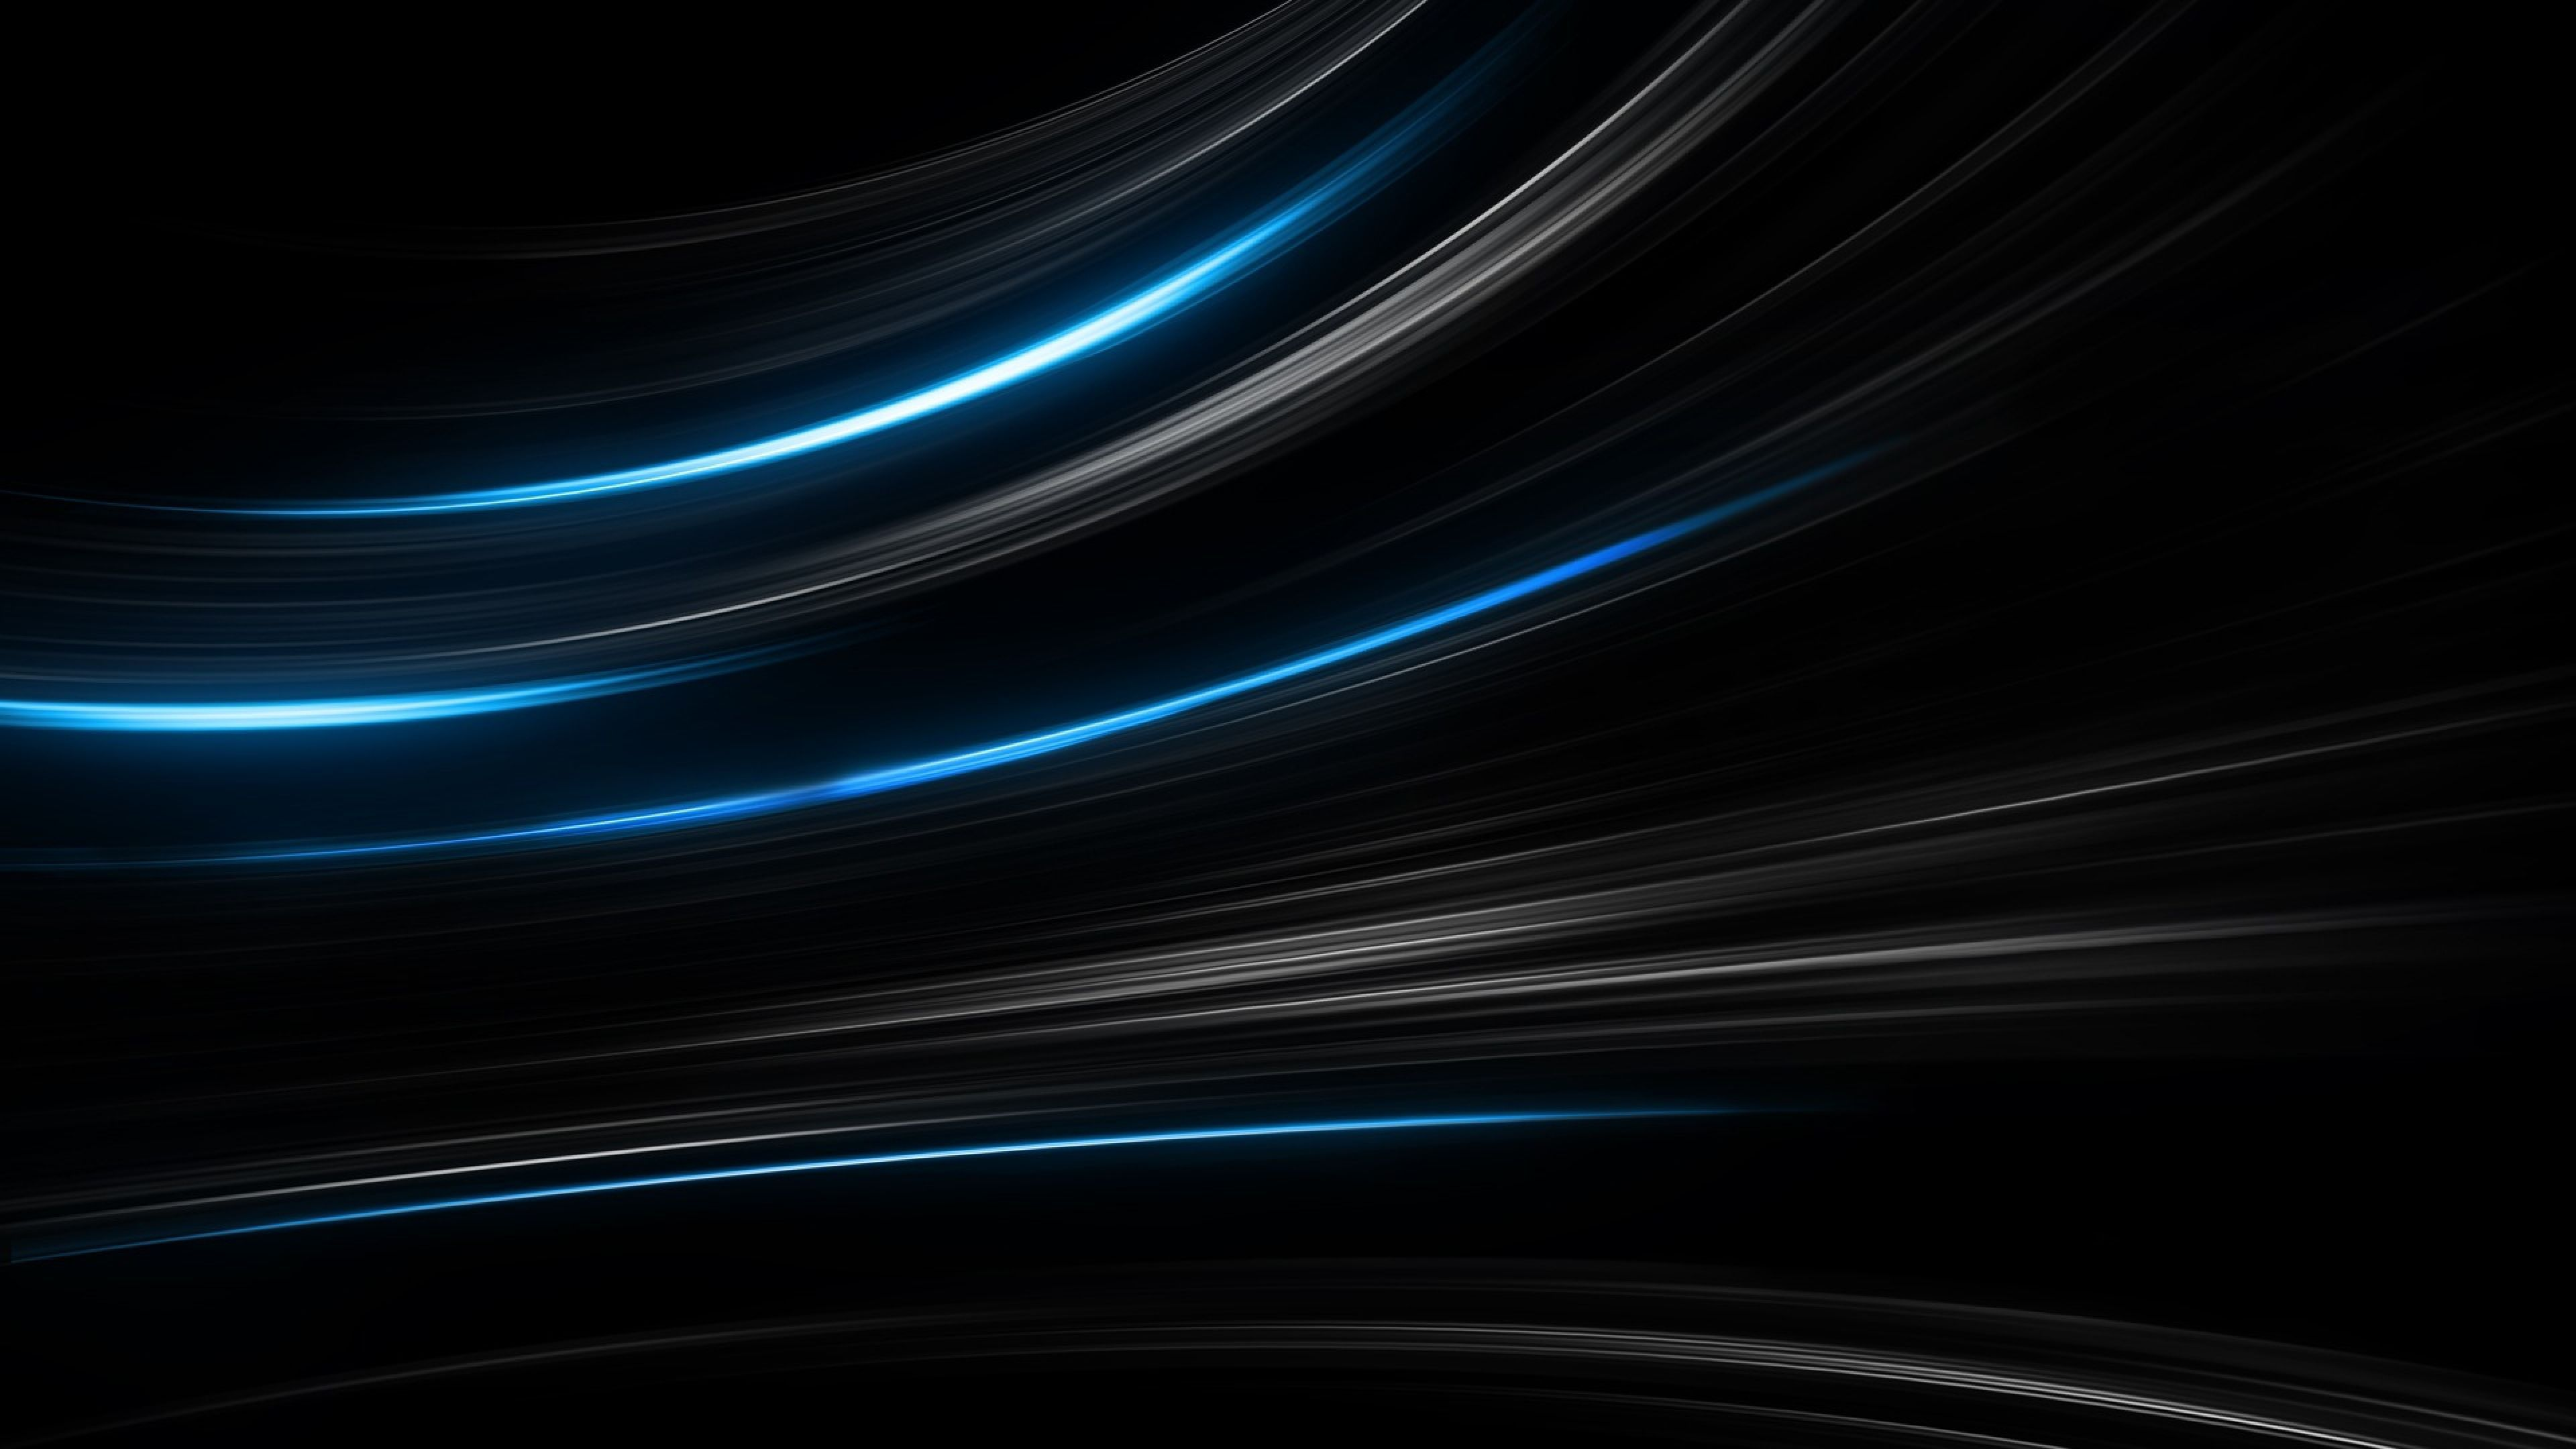 Blue Abstract 4k Wallpaper Black And Blue Wallpaper Dark Blue Wallpaper Abstract Wallpaper